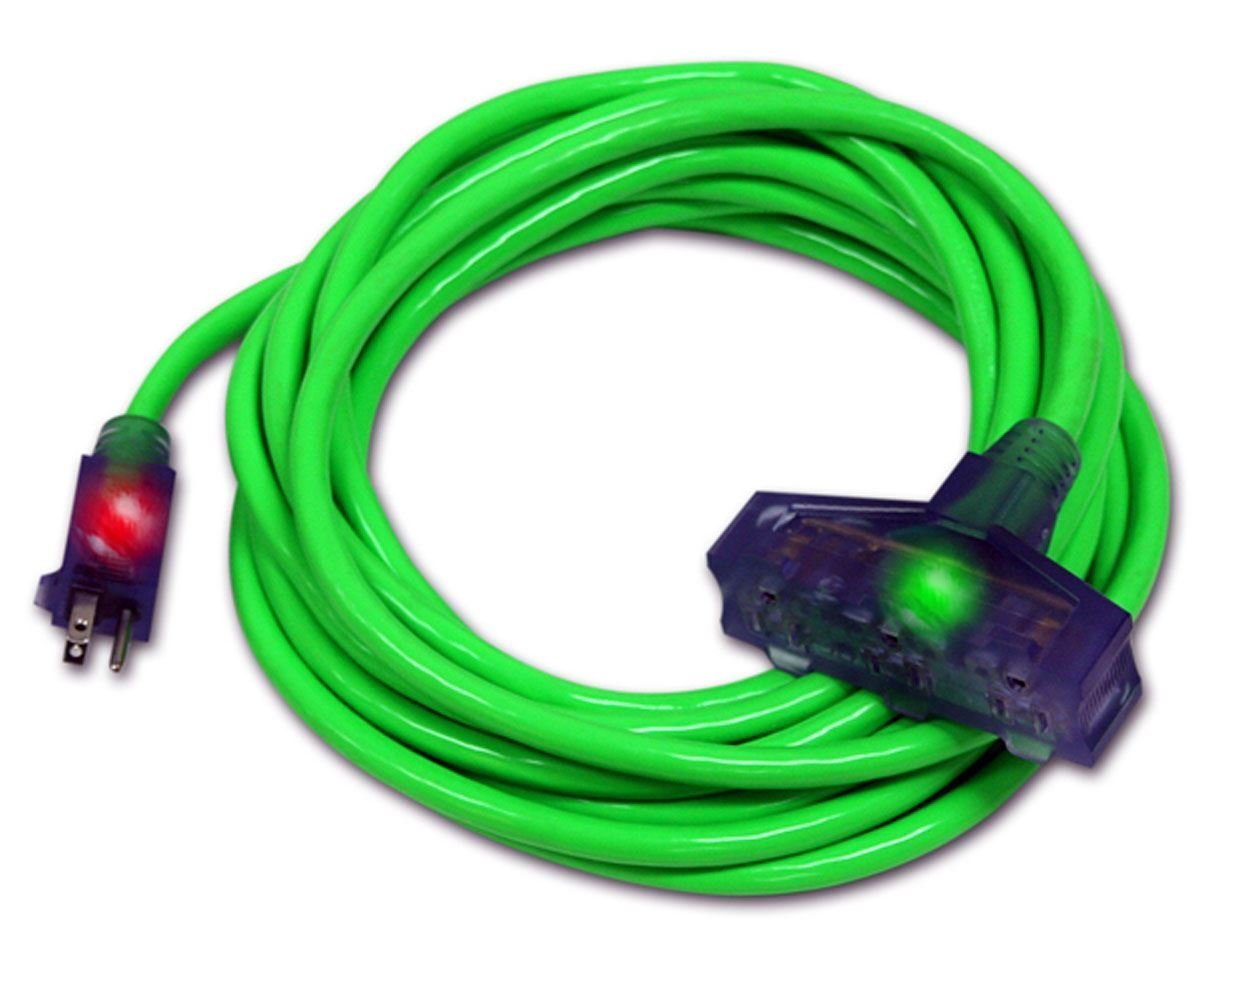 10 Gauge Triple Tap Extension Cord With Lighted Ends Century Contractor Grade 100' 10 Gauge Power Extension Cord 10/3 Plug Heavy Duty Indoor Outdoor Triple Outlet (100 ft 10 AWG Copper, green) by Century Extension Cord (Image #4)